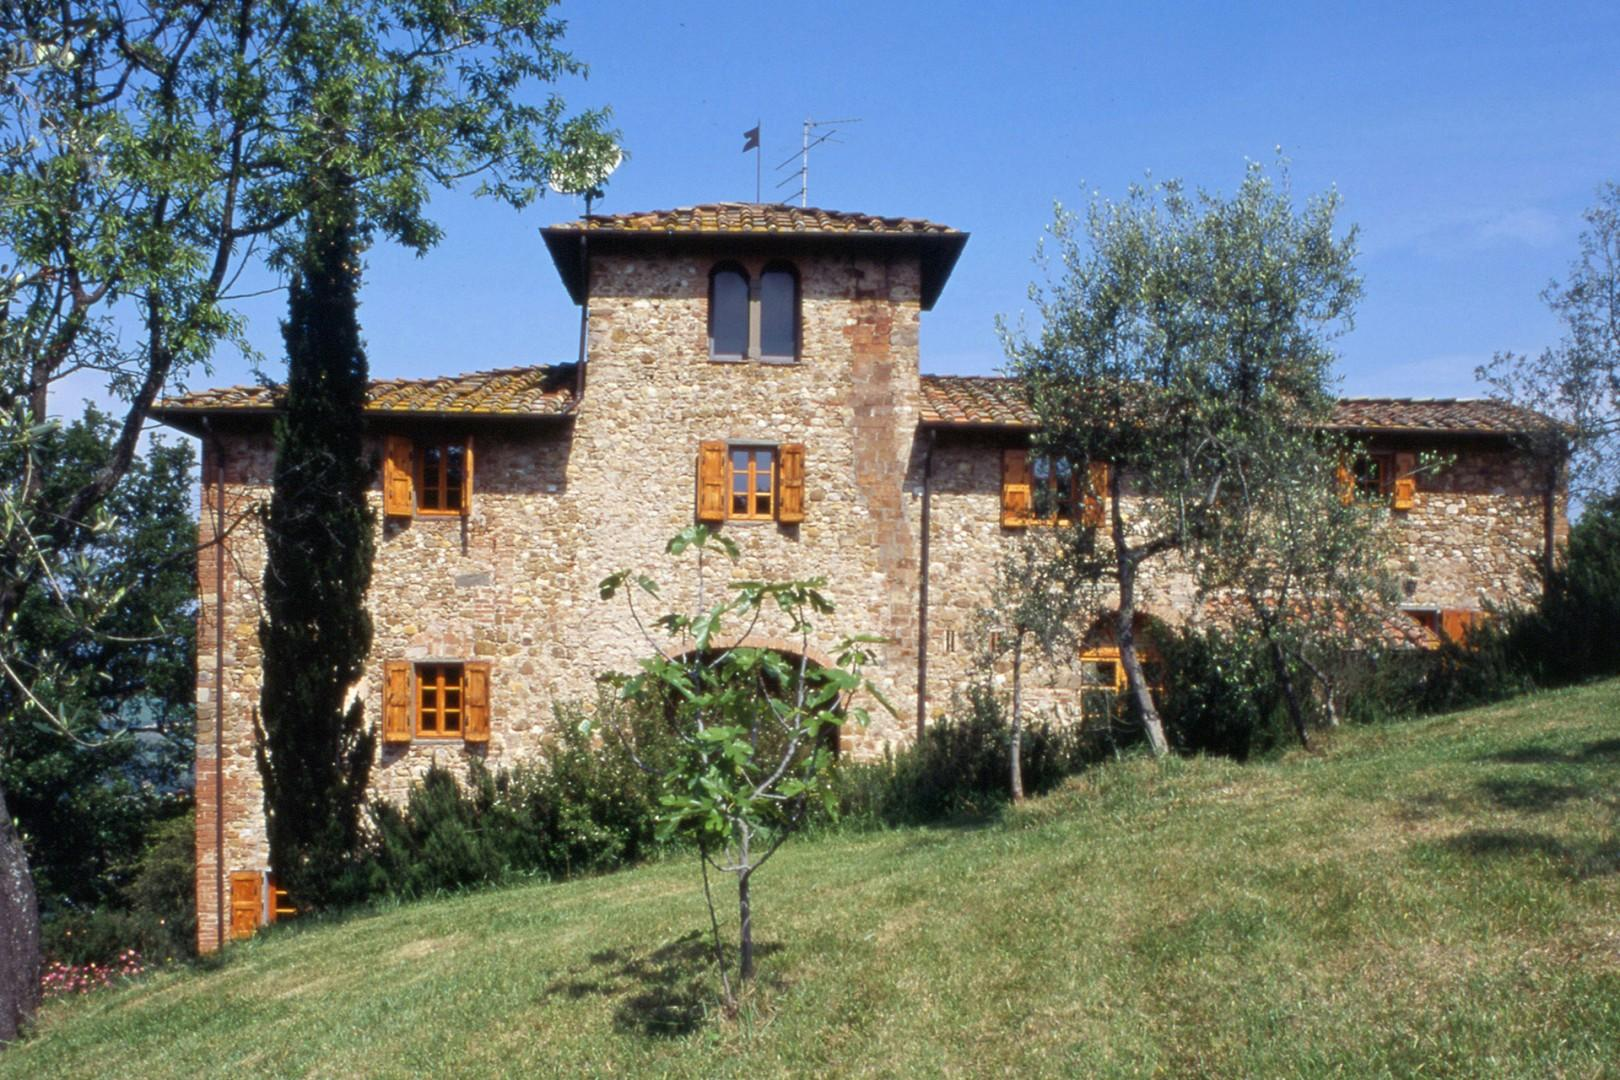 The villa is on a hill. Here you can see 2 floors and the arch of the terrace, off the dining room.